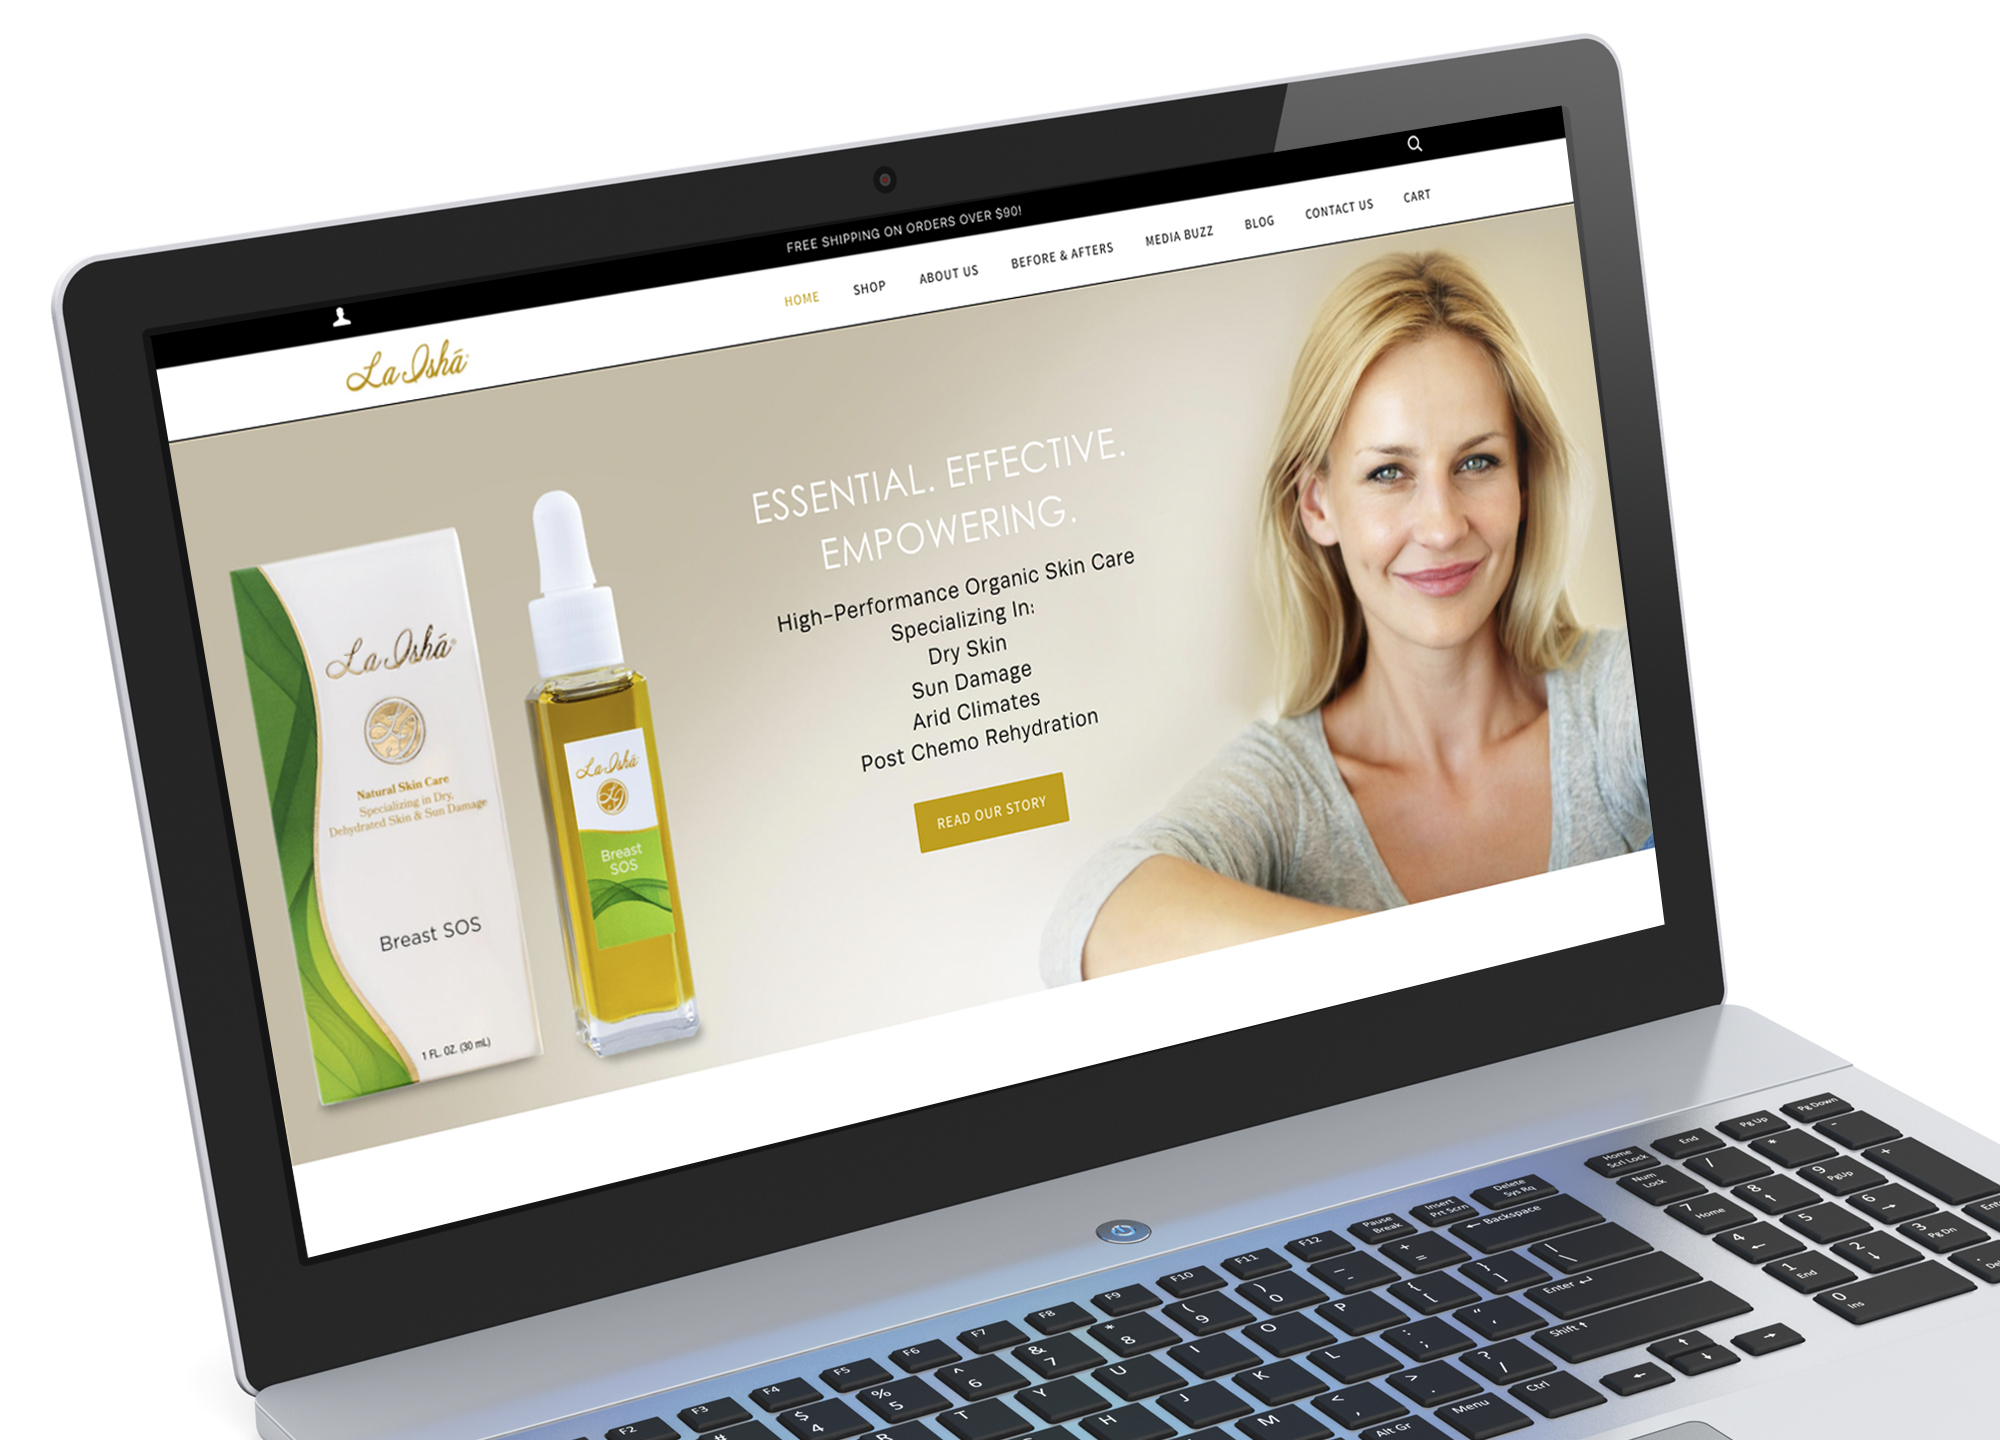 Creative Direction for Web Site Design